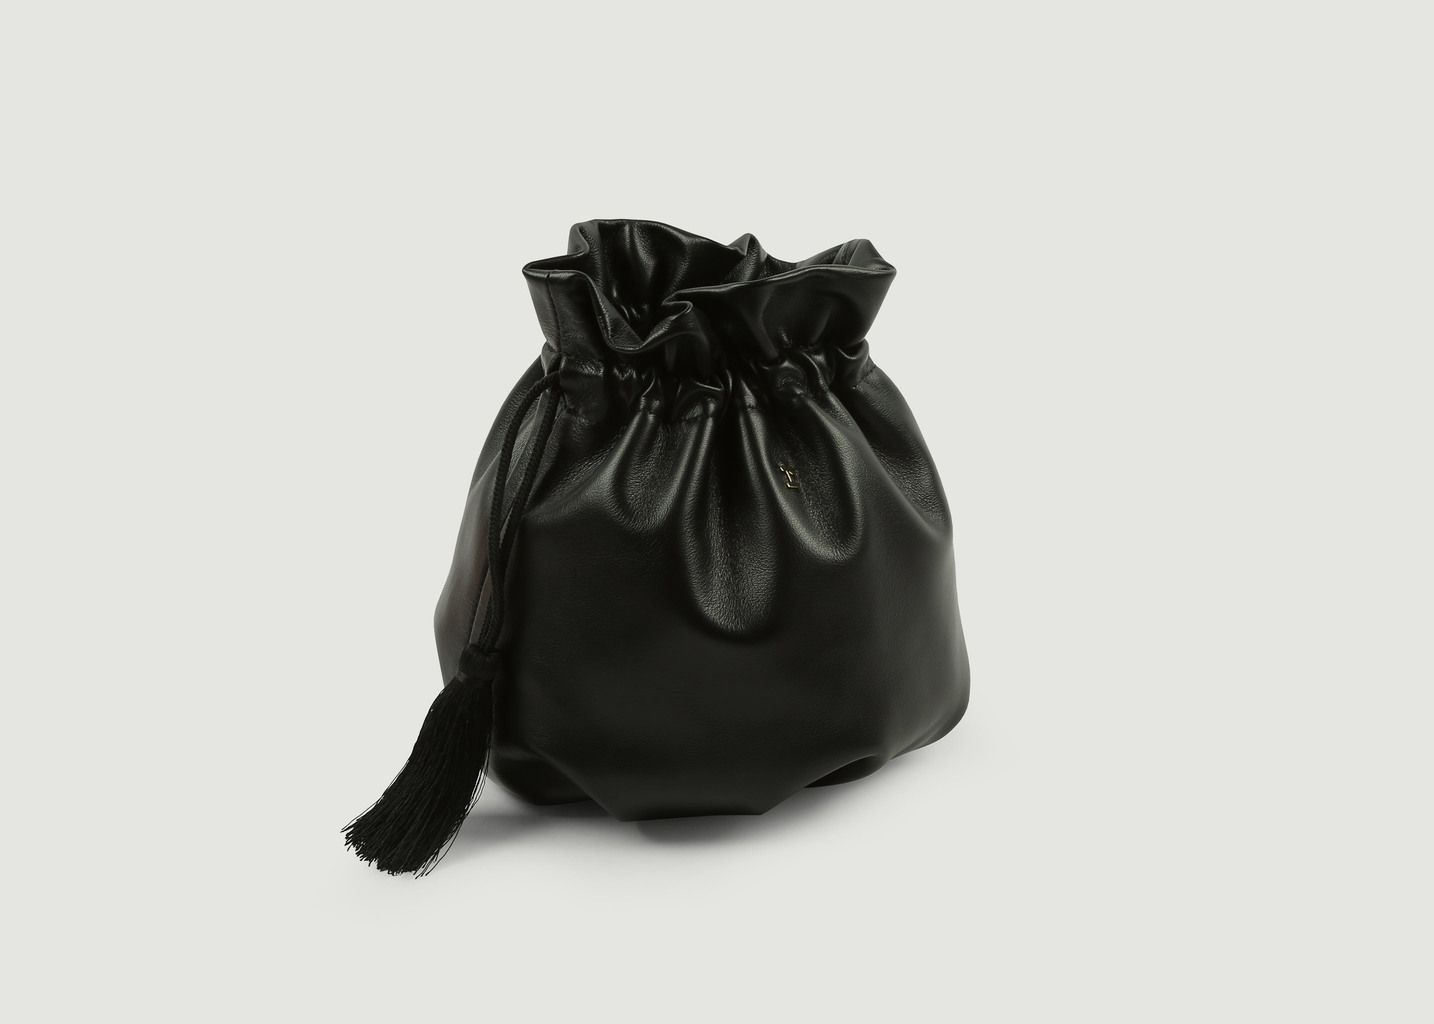 279445d8d8 Sac En Cuir Bourse Petit Air Noir Repetto | L'Exception